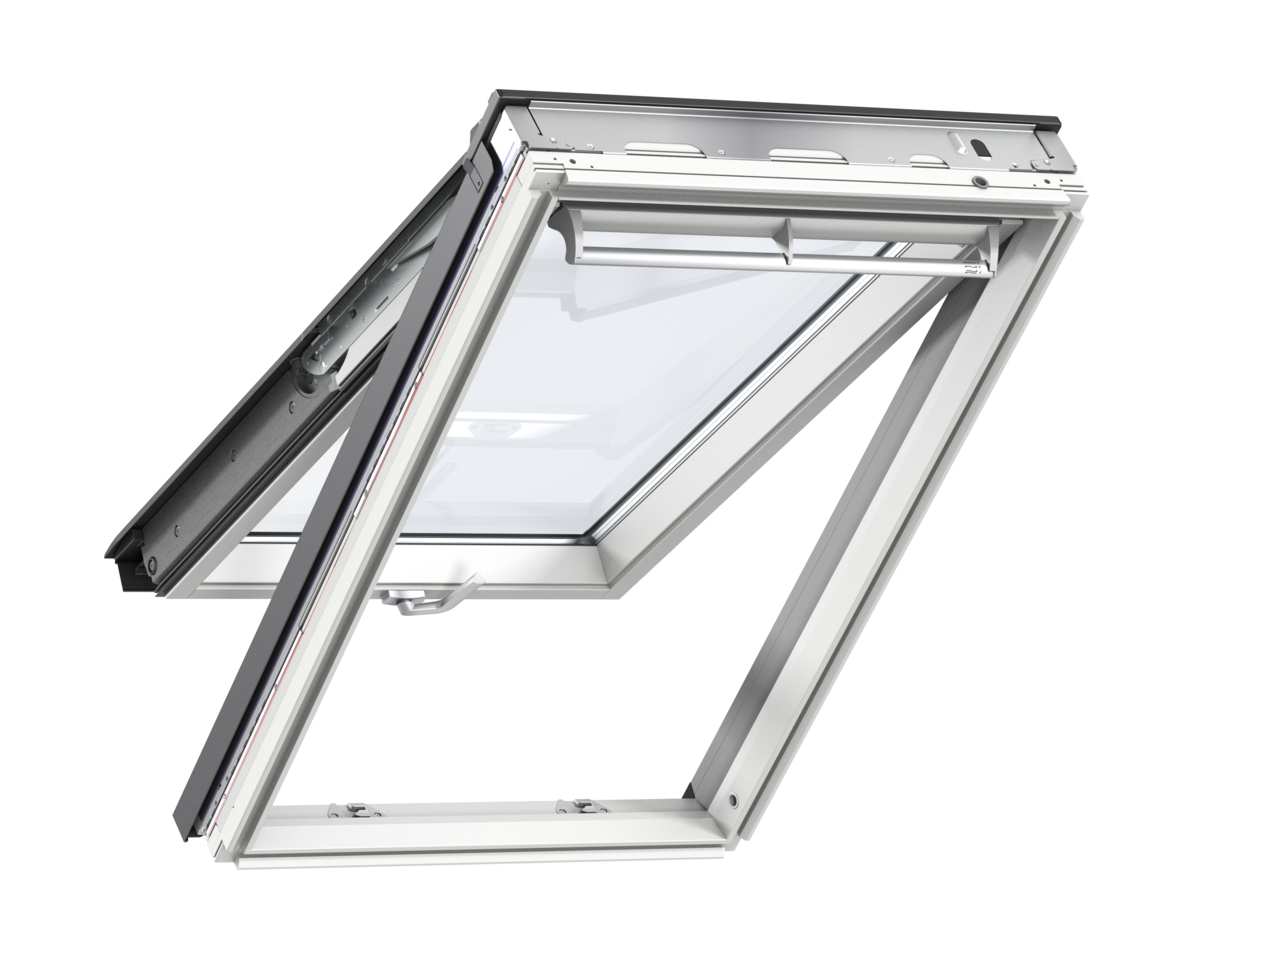 Velux GPL PK08 940 x 1400mm Top Hung 66Pane Roof Window - White Painted